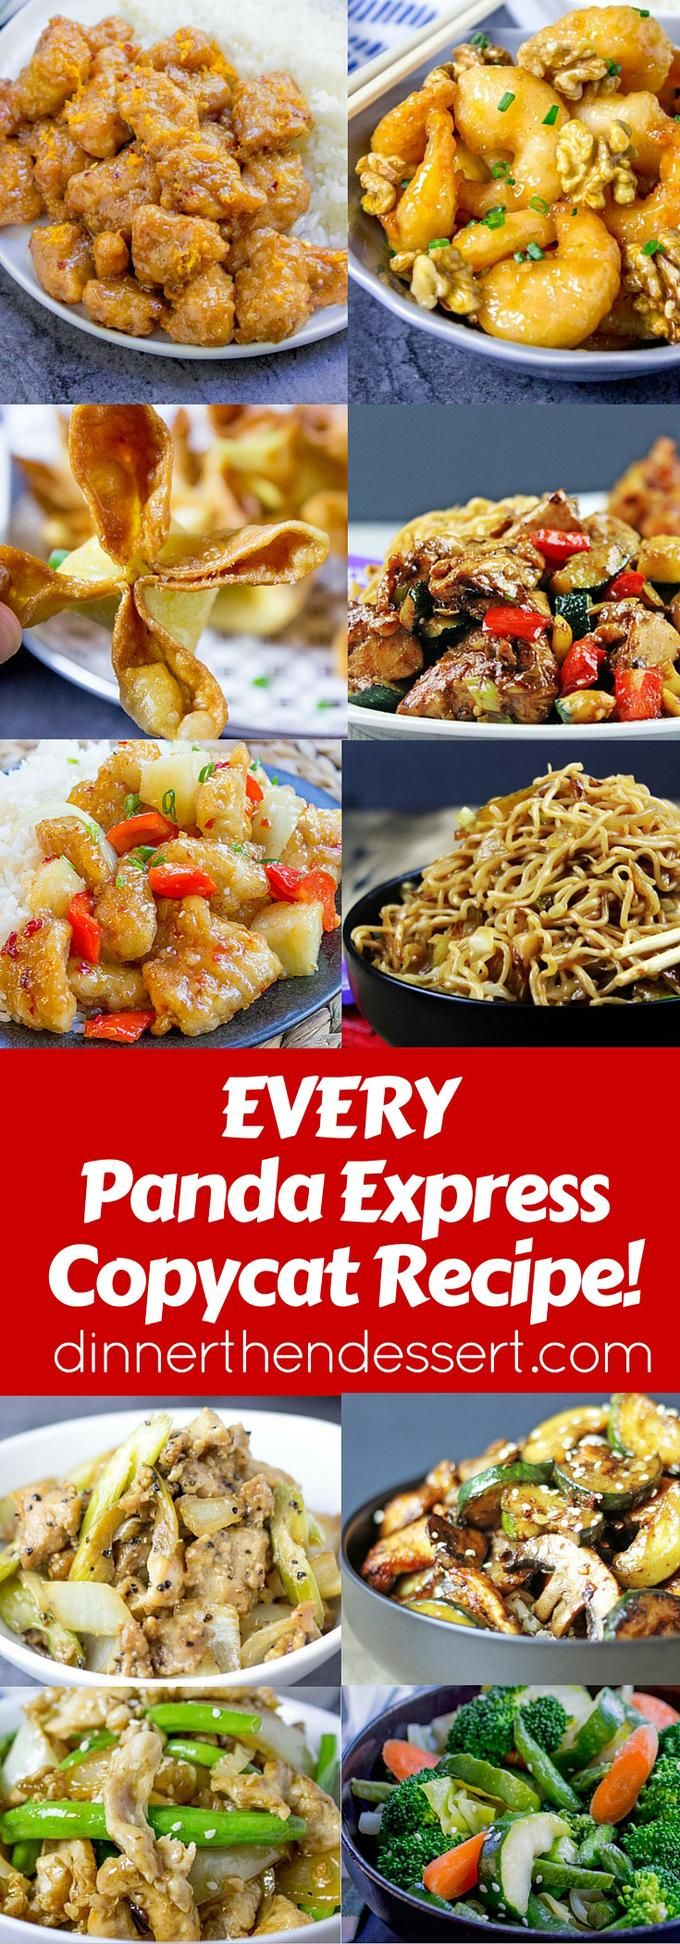 Panda Express Recipes Index Copycat Dinner Then Dessert Copykat Recipes Asian Recipes Recipes